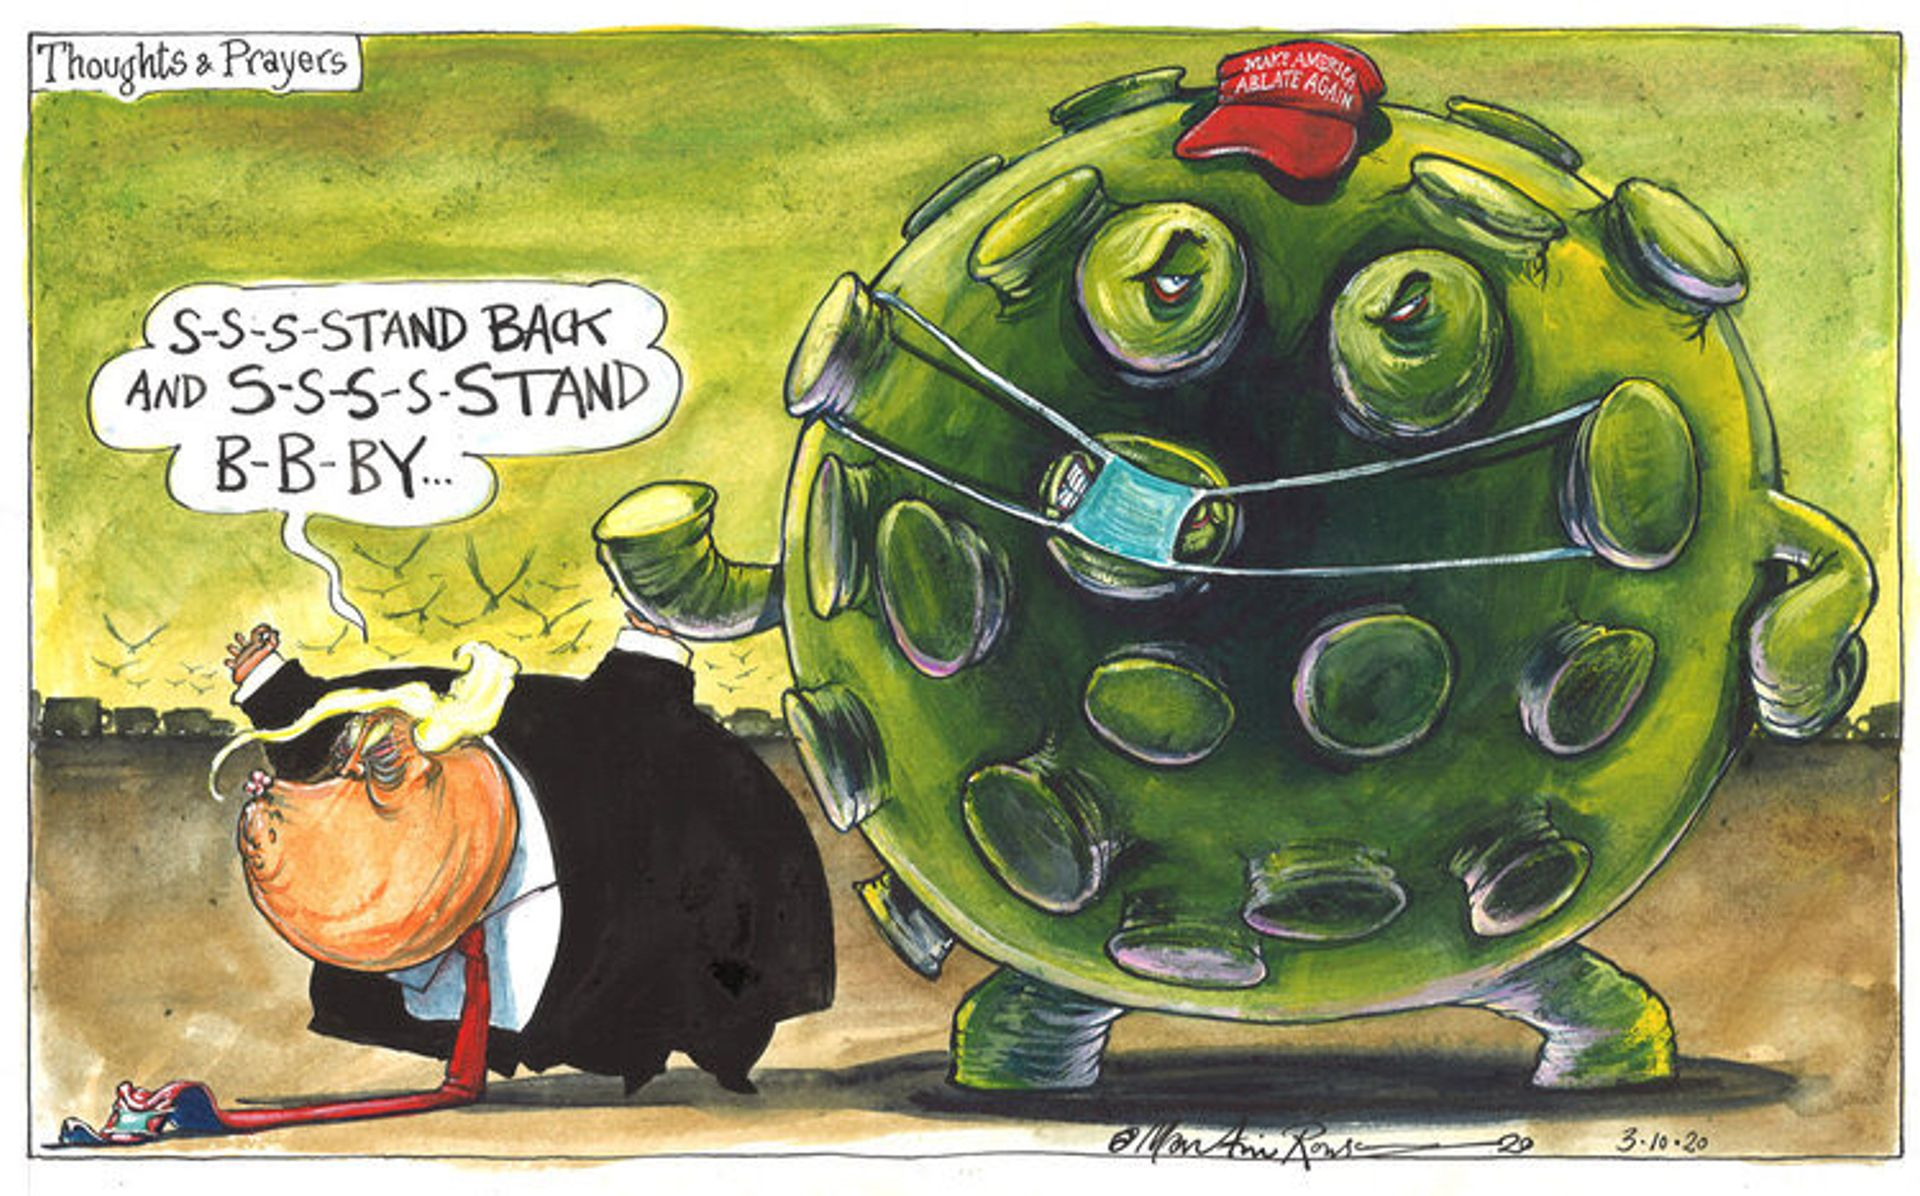 Thoughts and Prayers by Martin Rowson © Martin Rowson